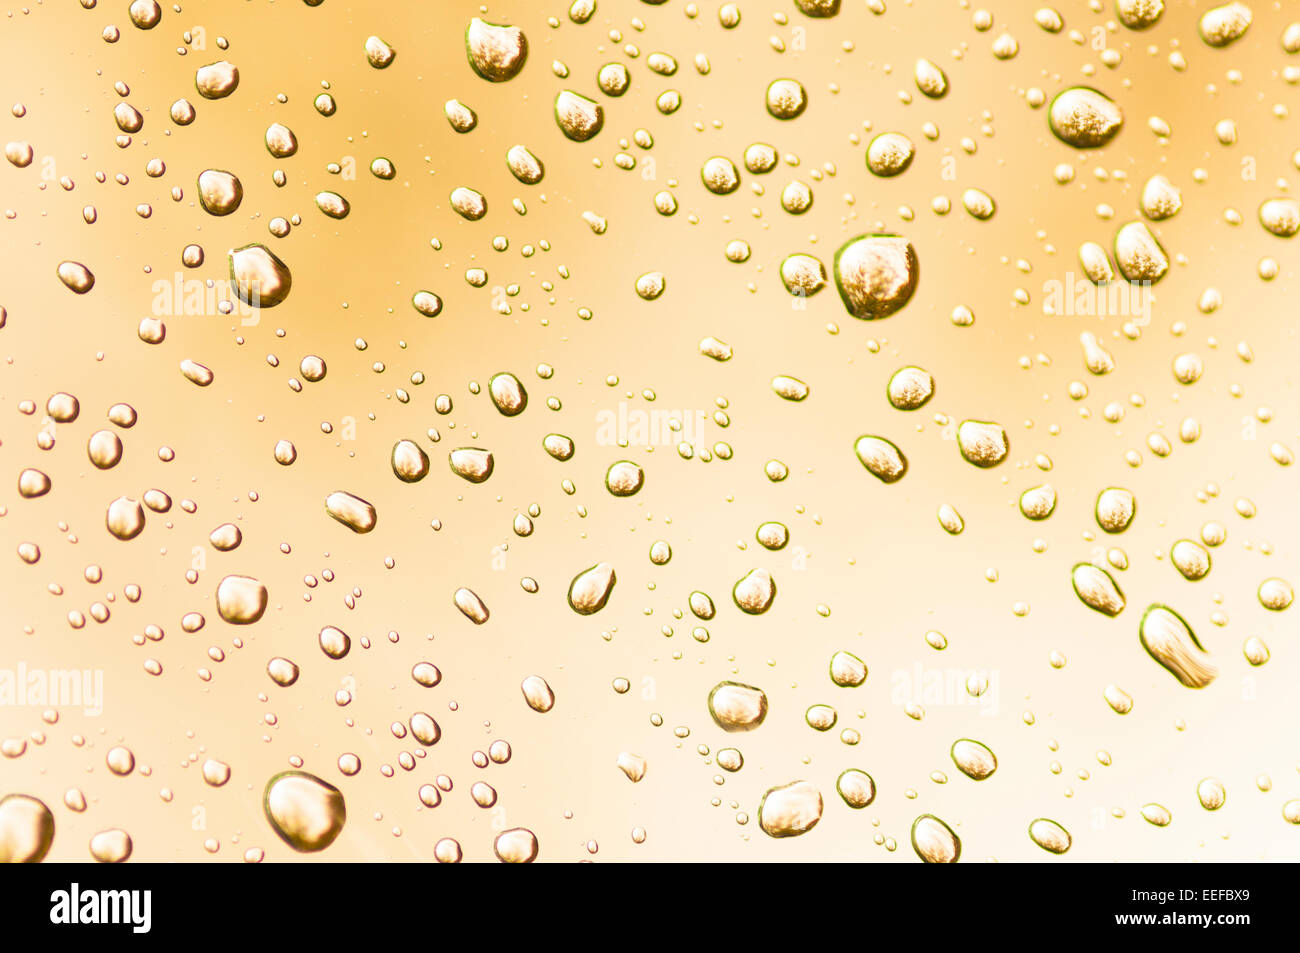 Water droplets on clear glass reflect ambient light producing interesting patterns. - Stock Image